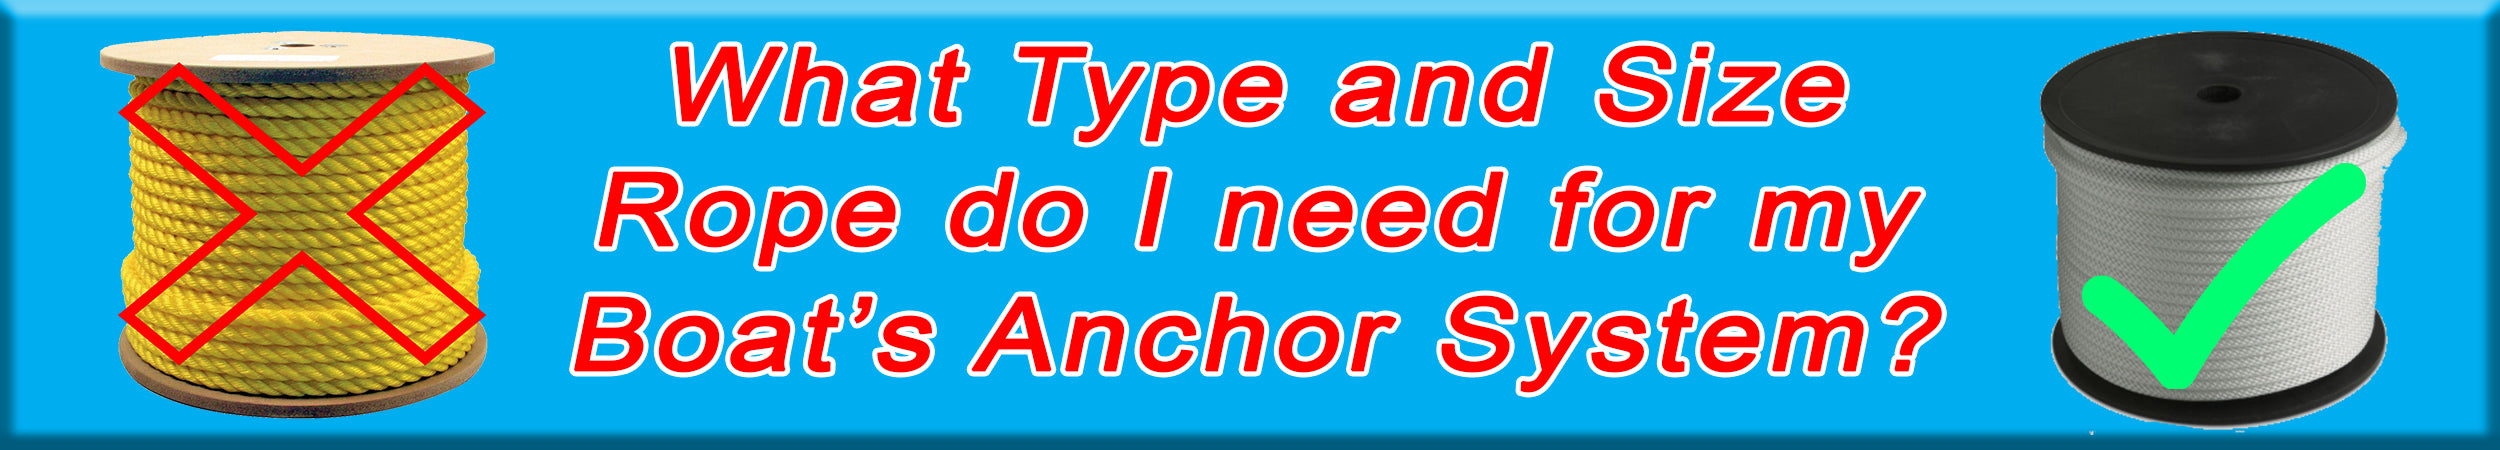 Choosing the right size and type of anchor rope for your boat